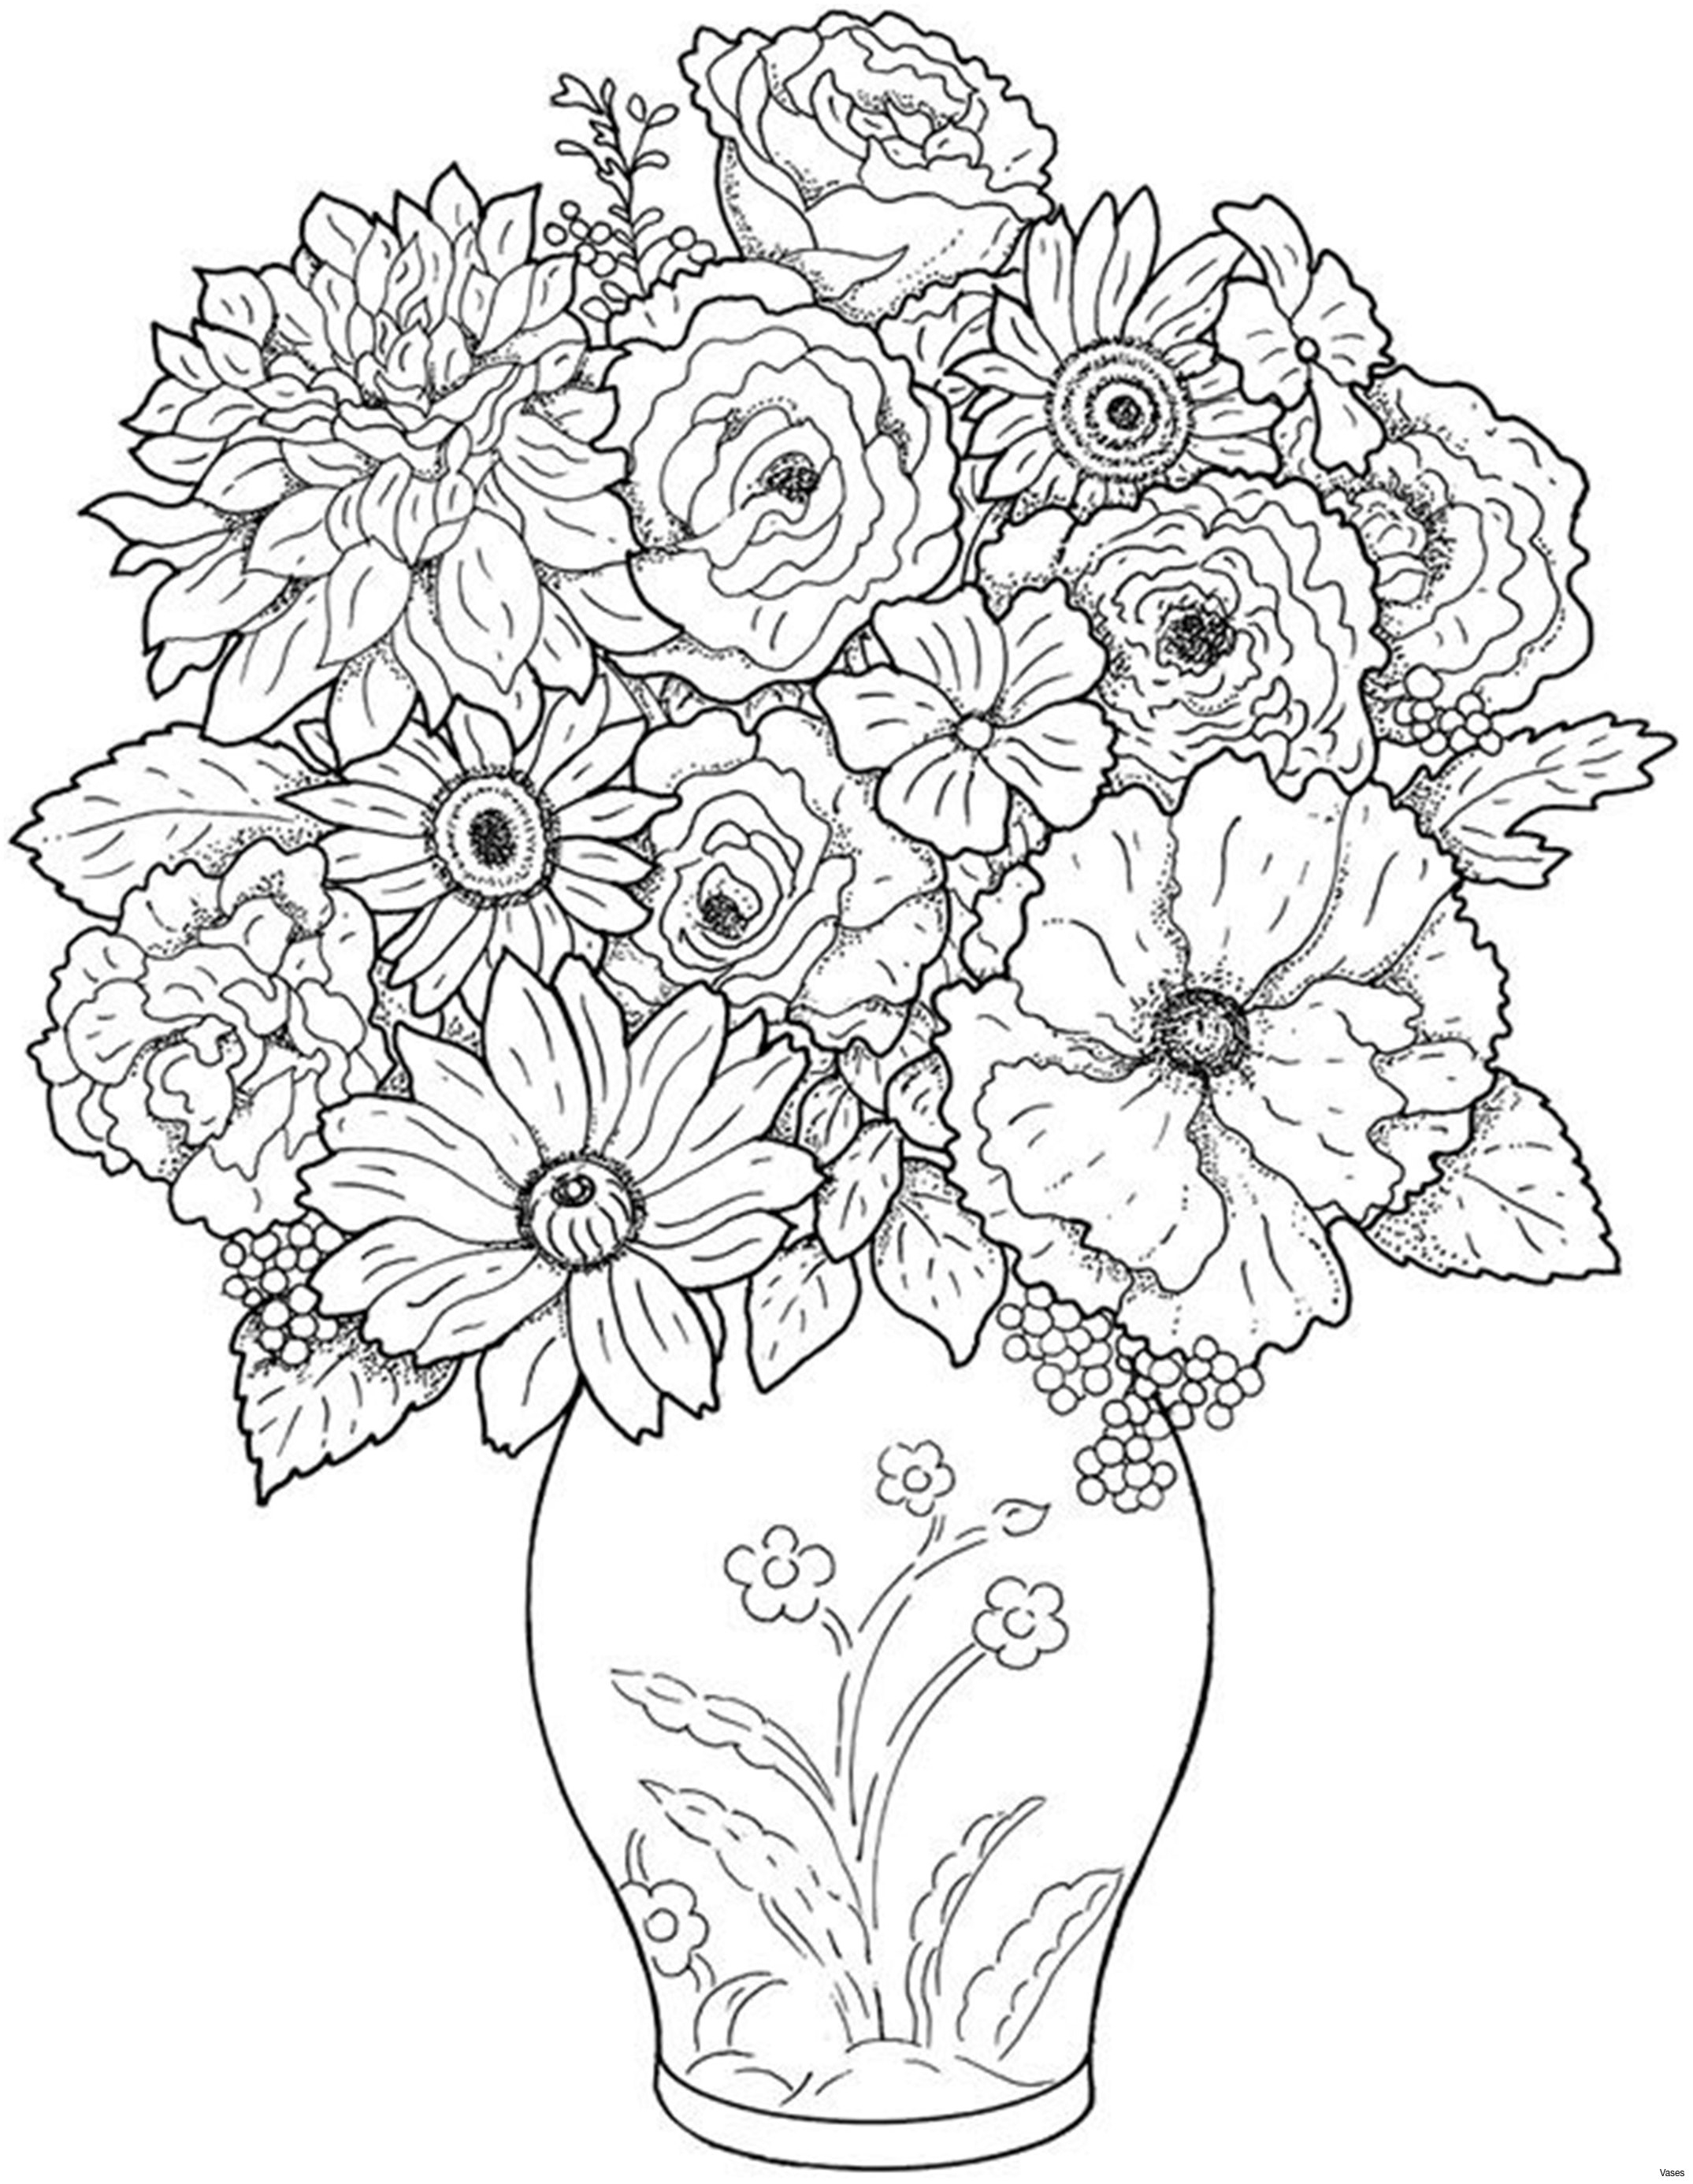 garden coloring page gardening coloring pages to download and print for free page garden coloring